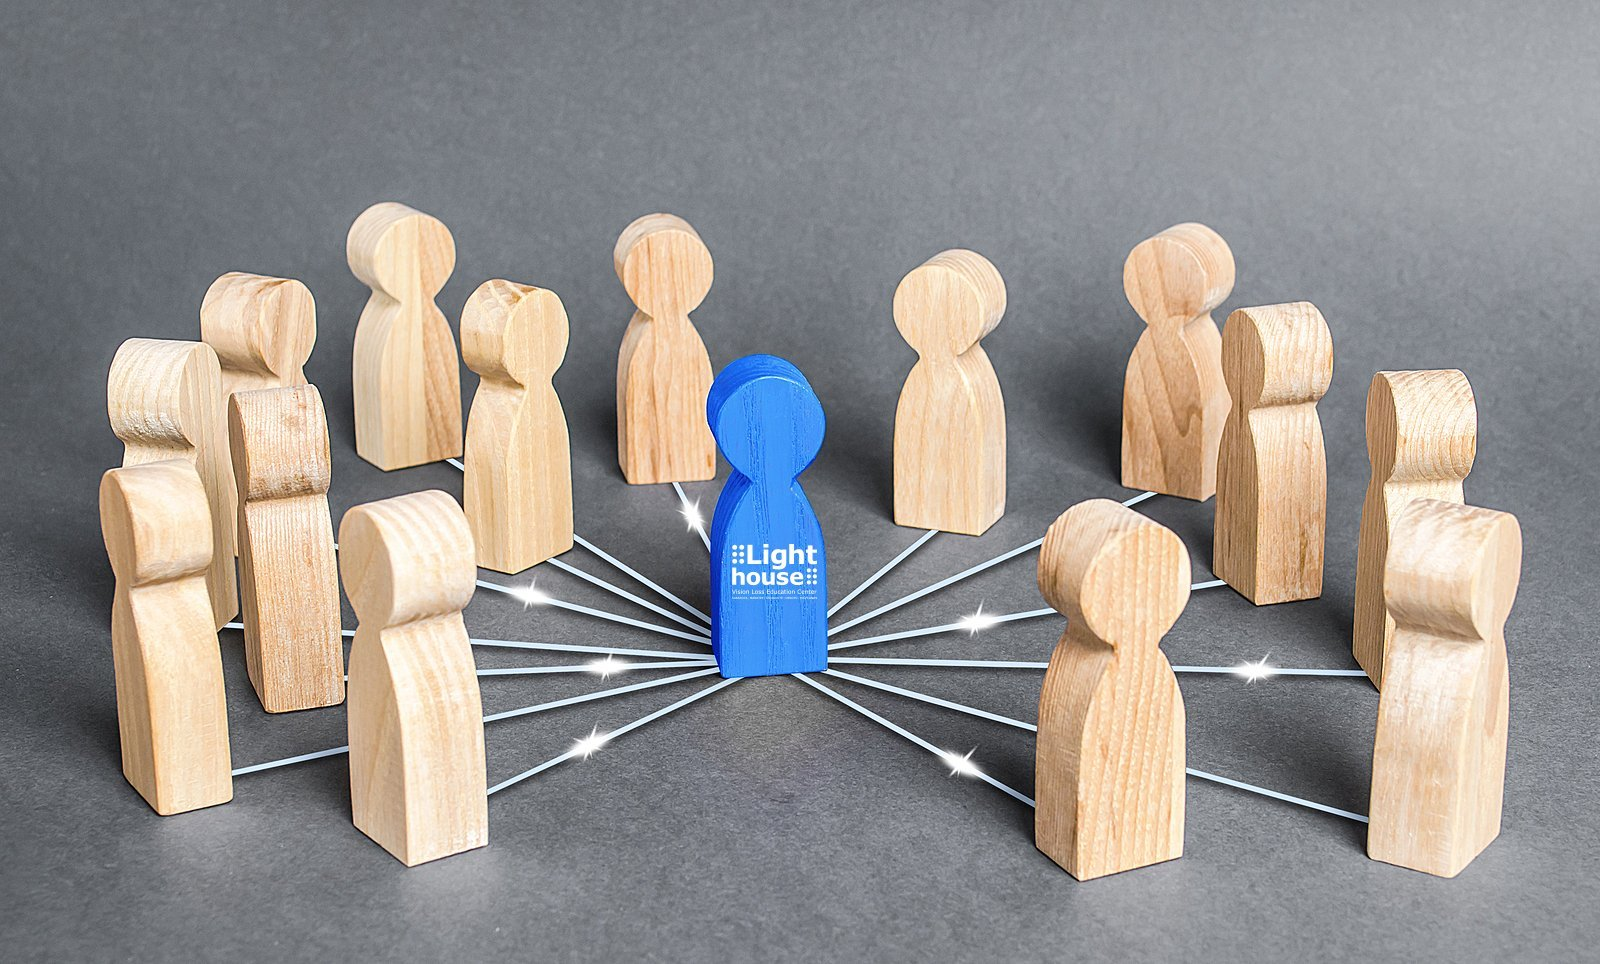 The blue person is connected with employees by wide network of lines. At the center of a complex large system. Communication social. Cooperation, collaboration. Corporate Partnerships